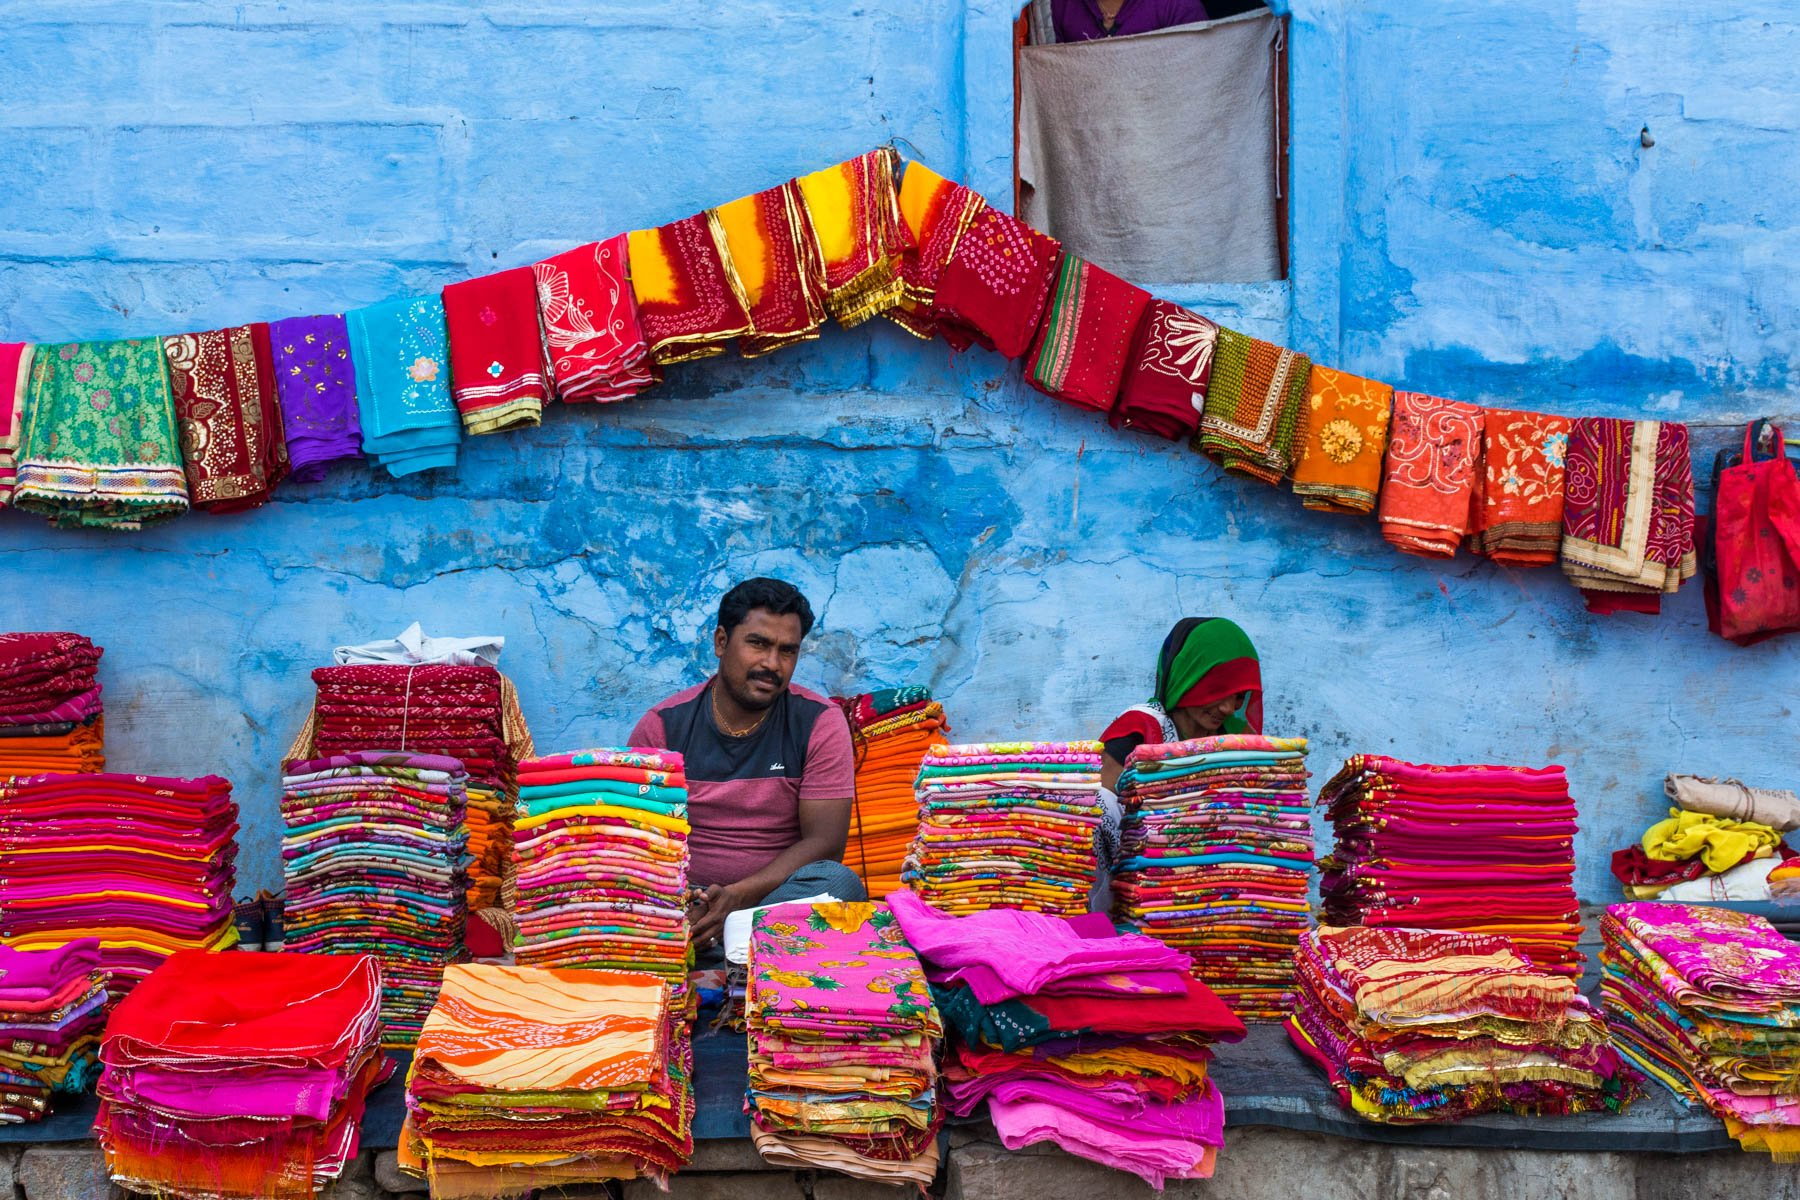 Photo essay about the streets and people of the Blue City of Jodhpur, Rajasthan, India - A man selling fabric in front of a blue building - Lost With Purpose